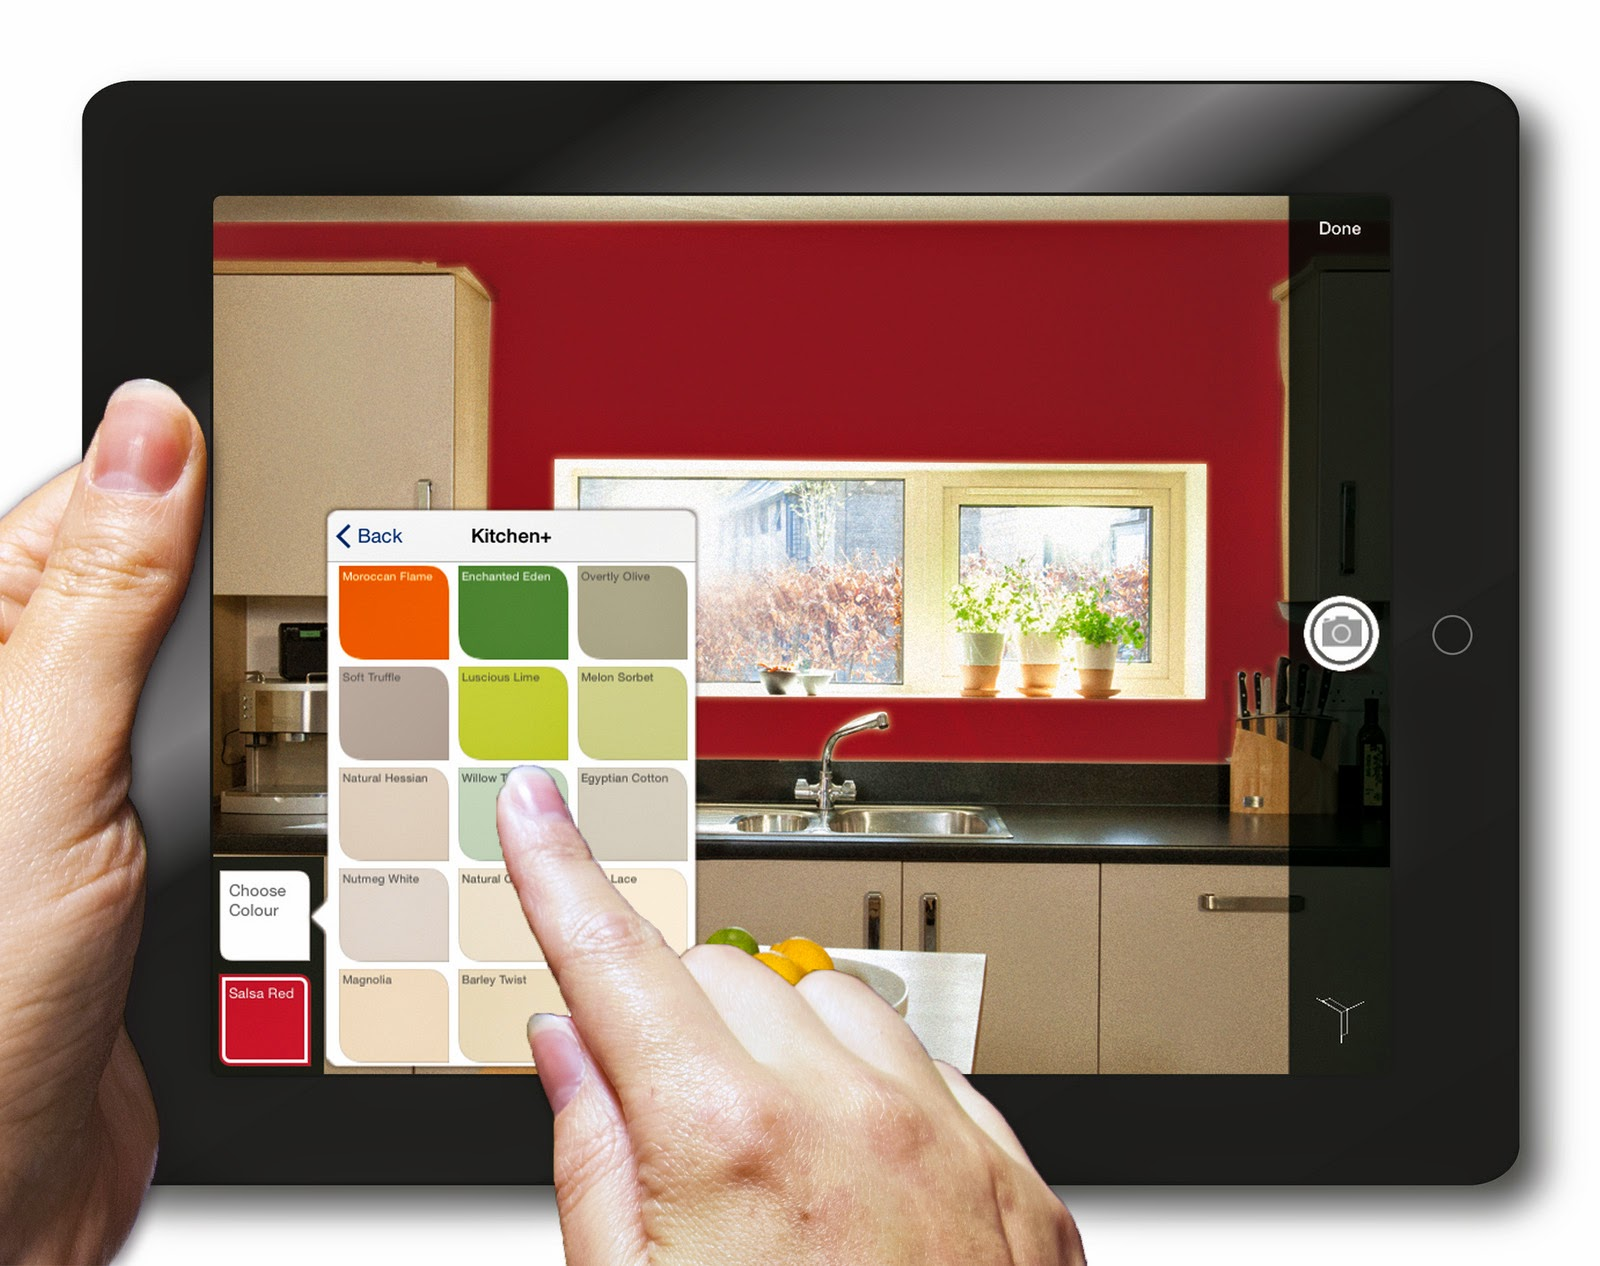 – The Dulux Visualiser App allows a user to envision the room in various colour options before making a purchase.